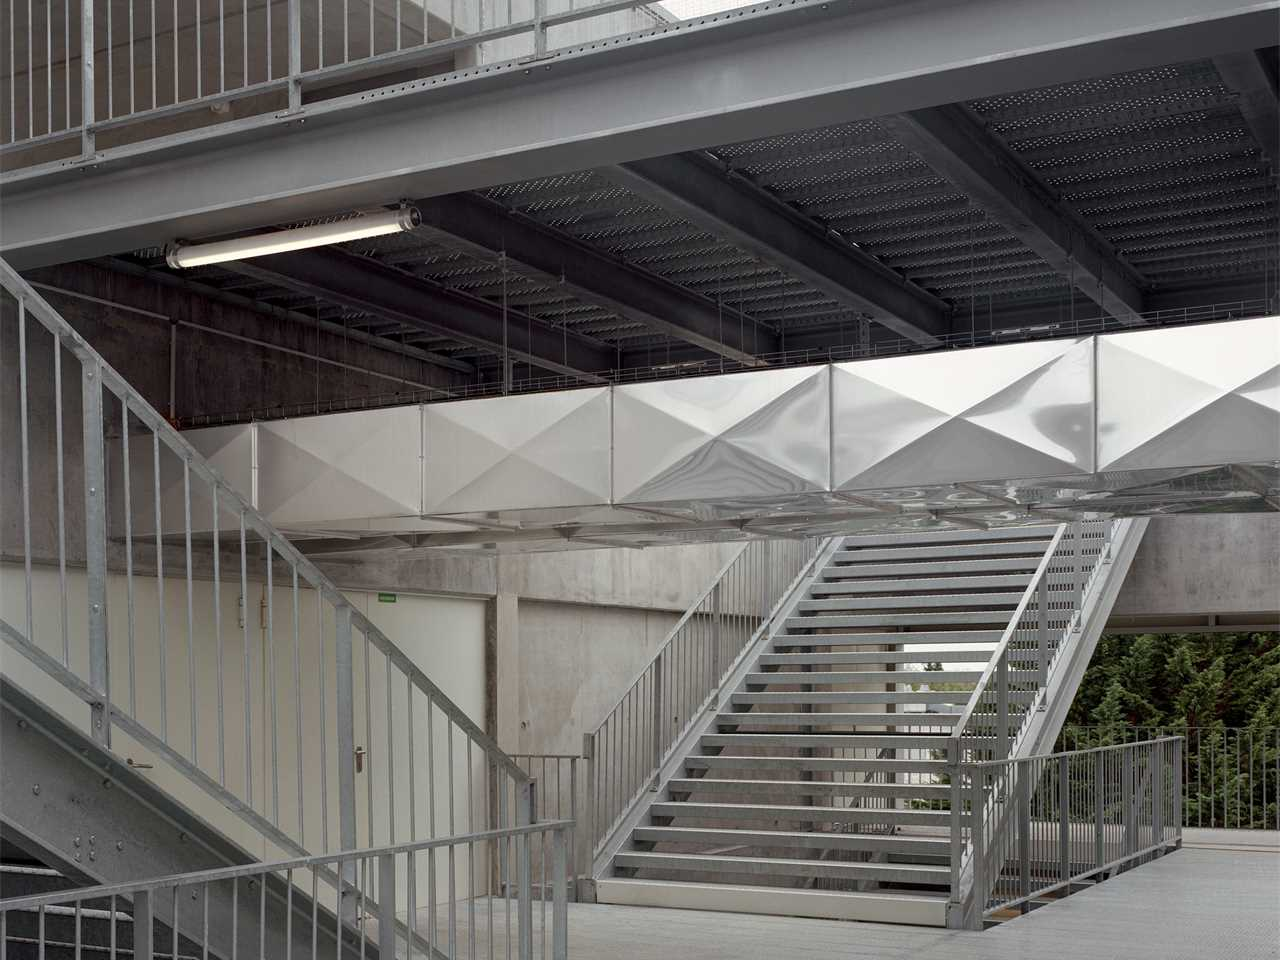 Project update – Public Condenser: Low-cost flexible university building, Paris, France